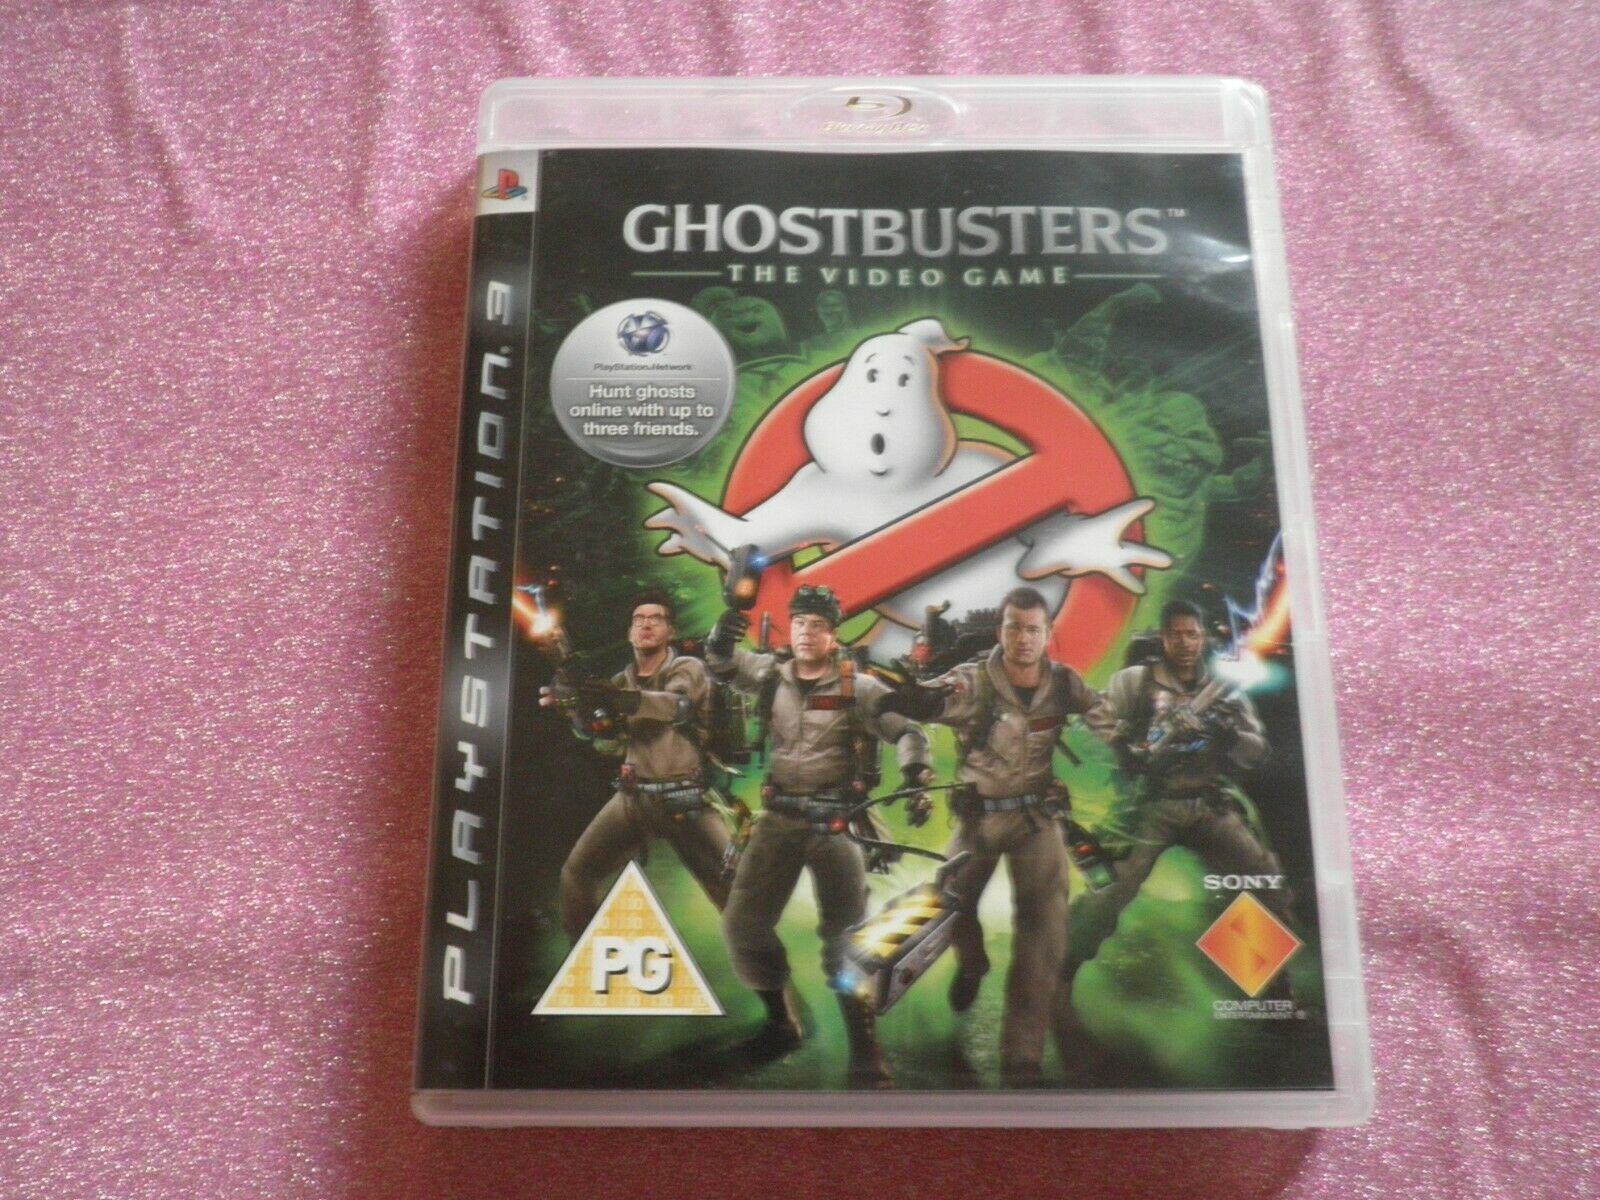 ghostbusters ps3 ghostbusters playstation 3 ghostbusters the videogame ps3